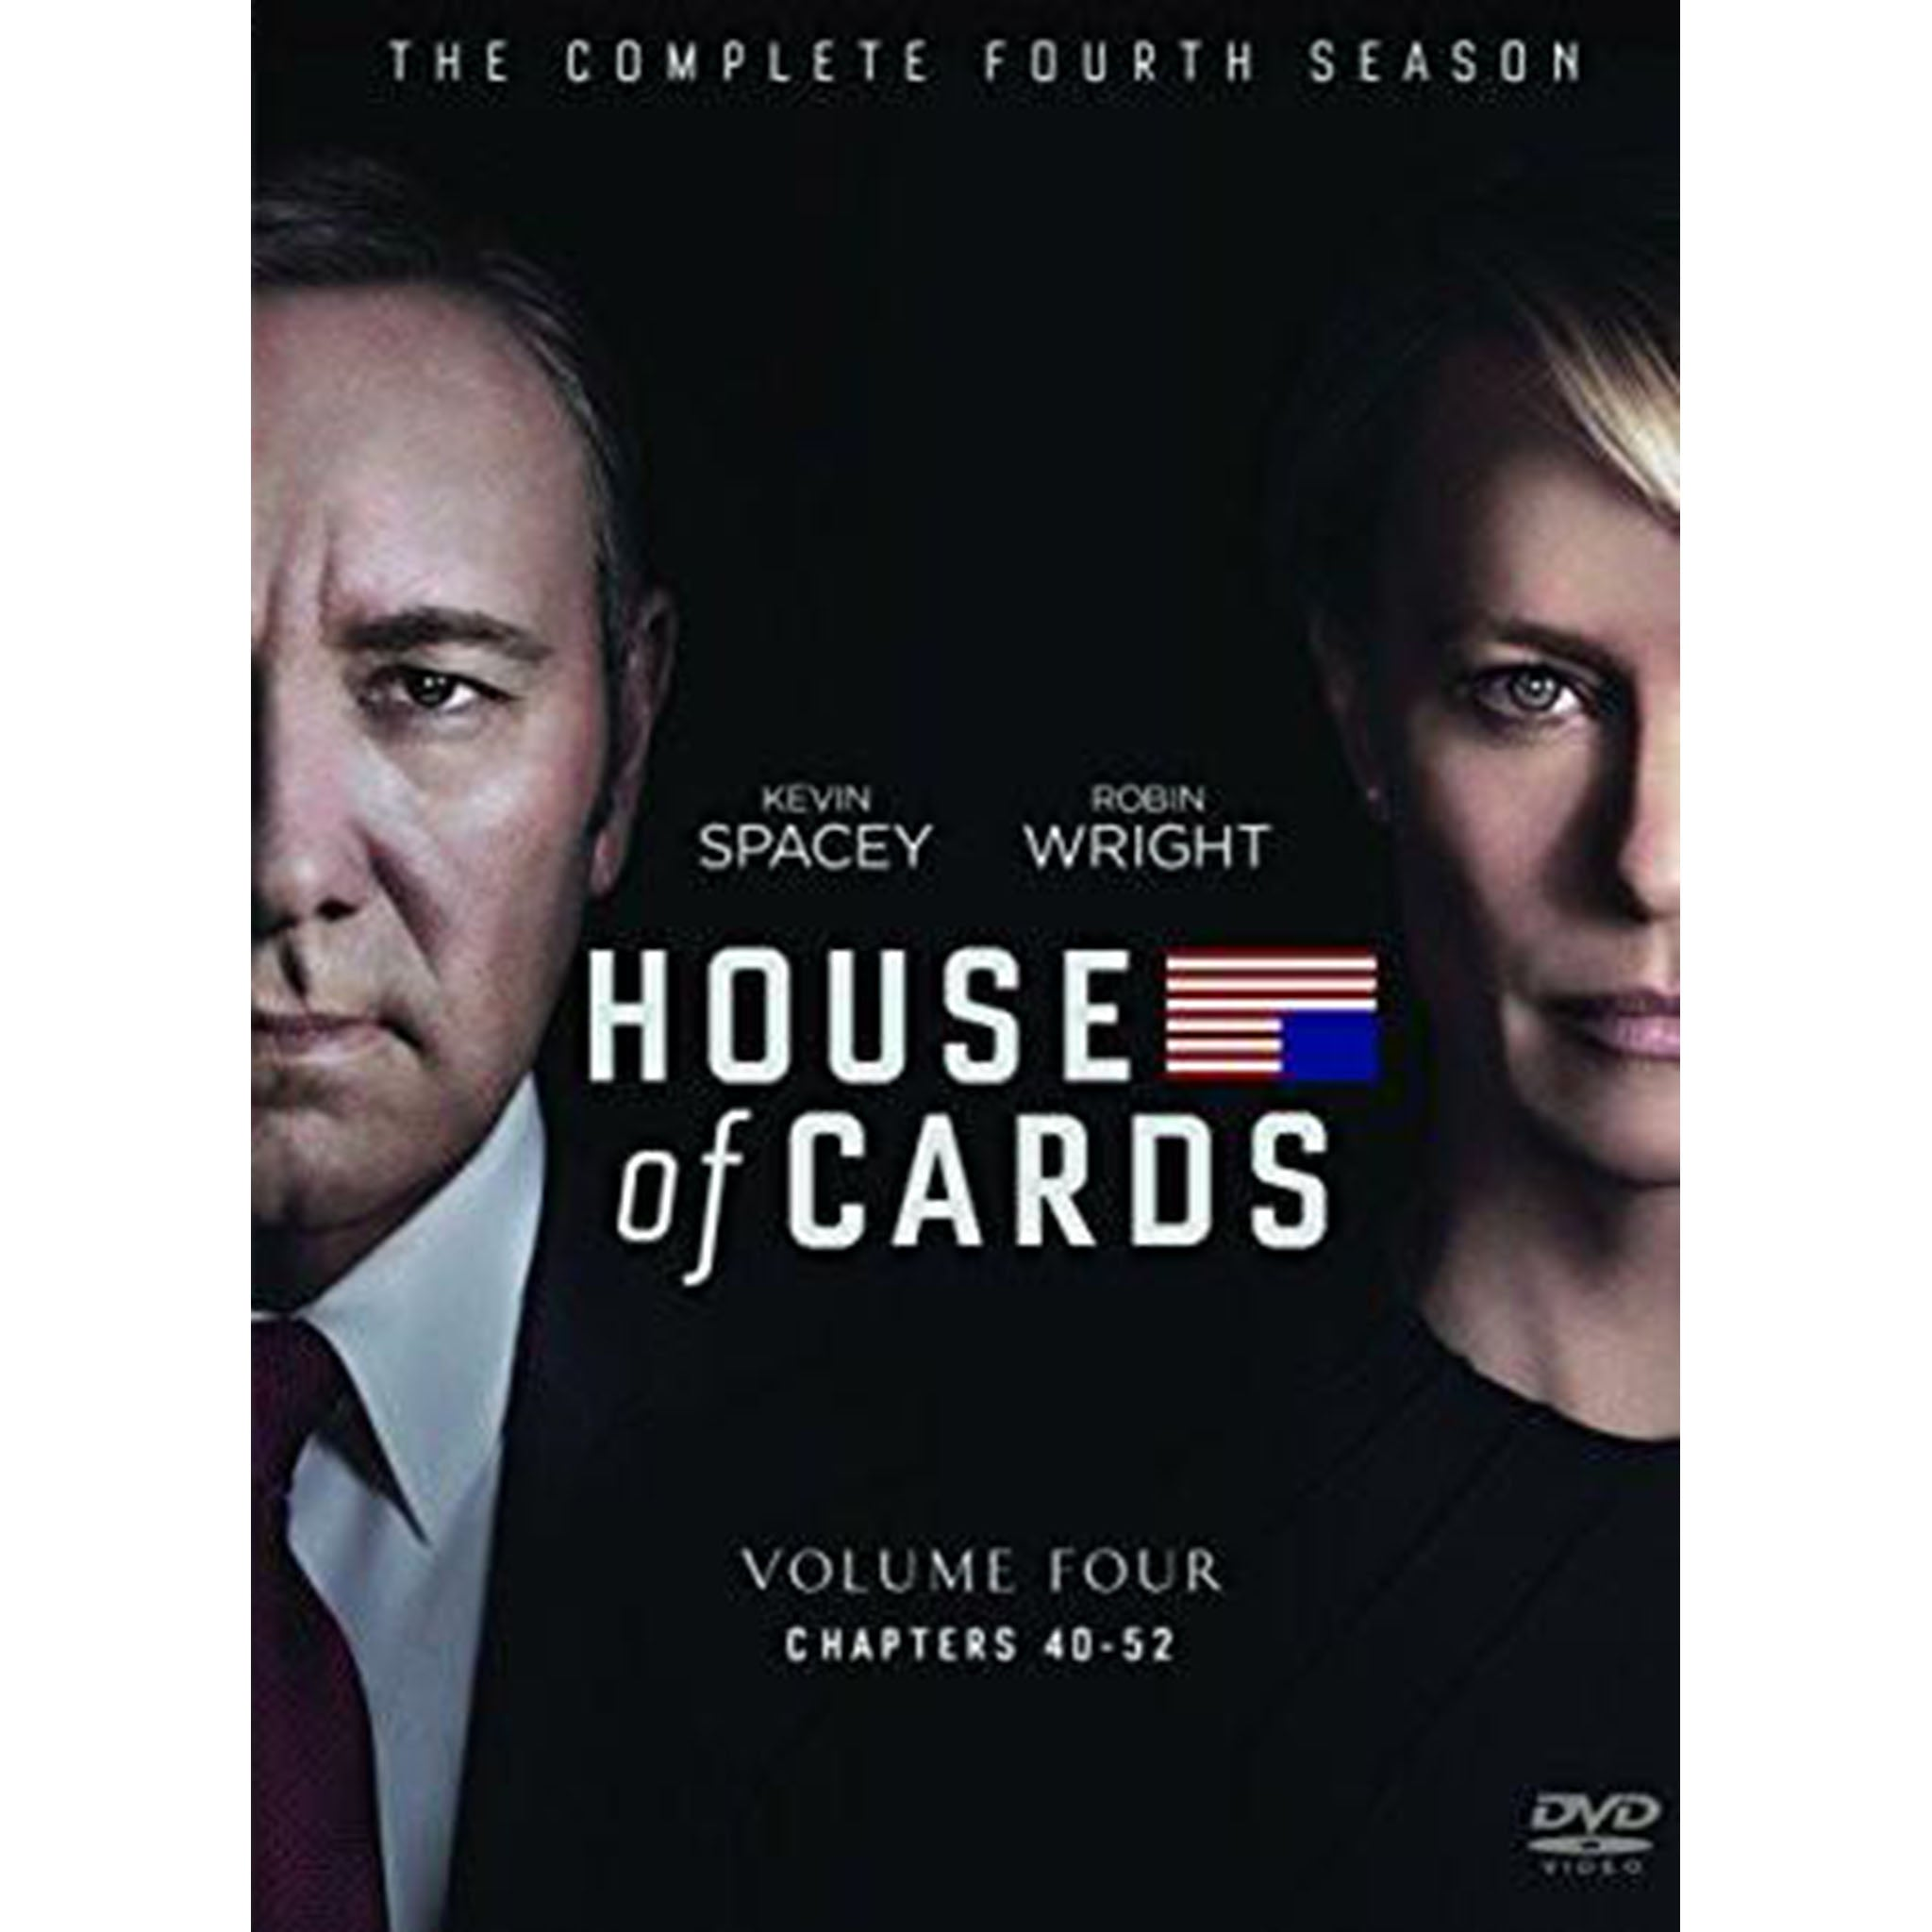 House of Cards: Season 4 (DVD) - DVDsHQ